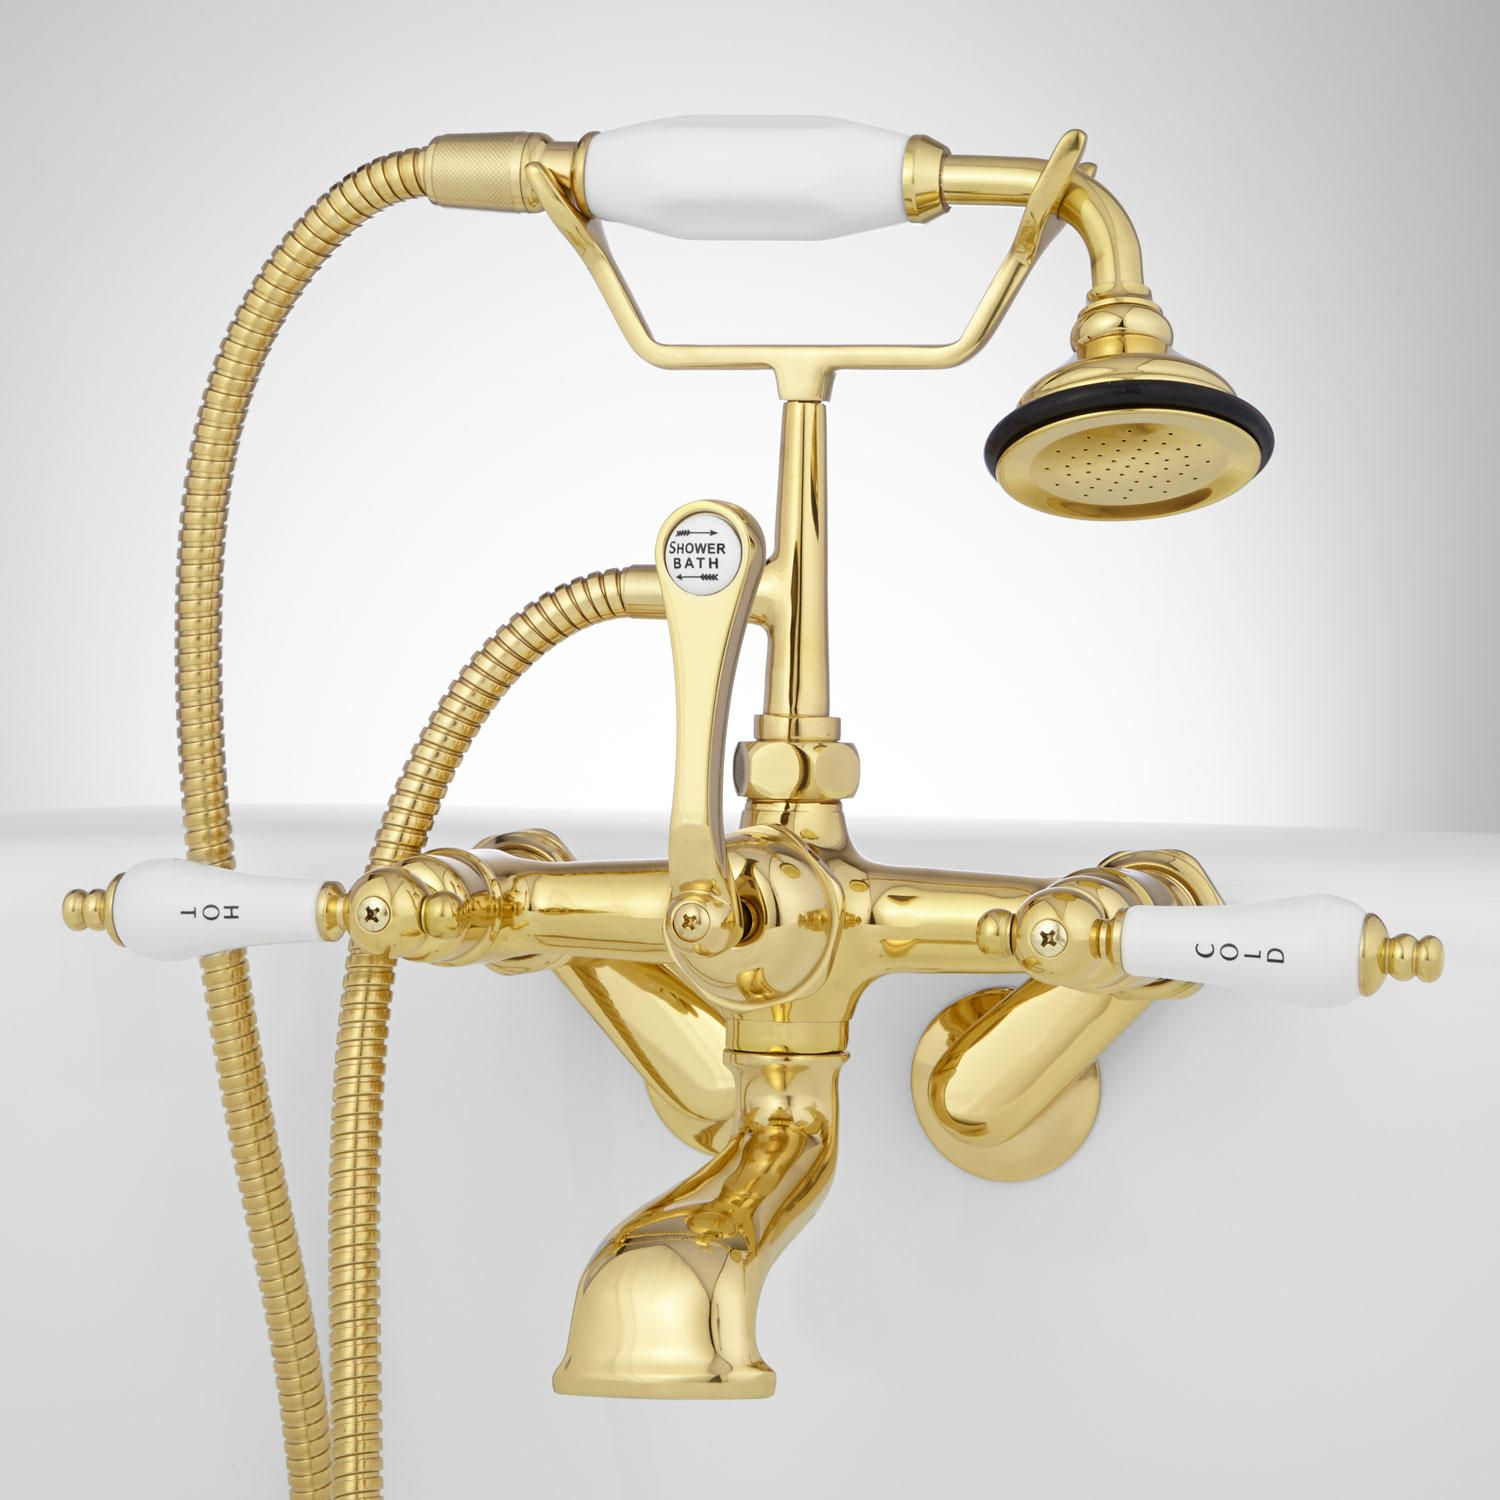 Tub Wall-Mount Telephone Faucet with Hand Shower - Porcelain Lever Handle - Polished Brass